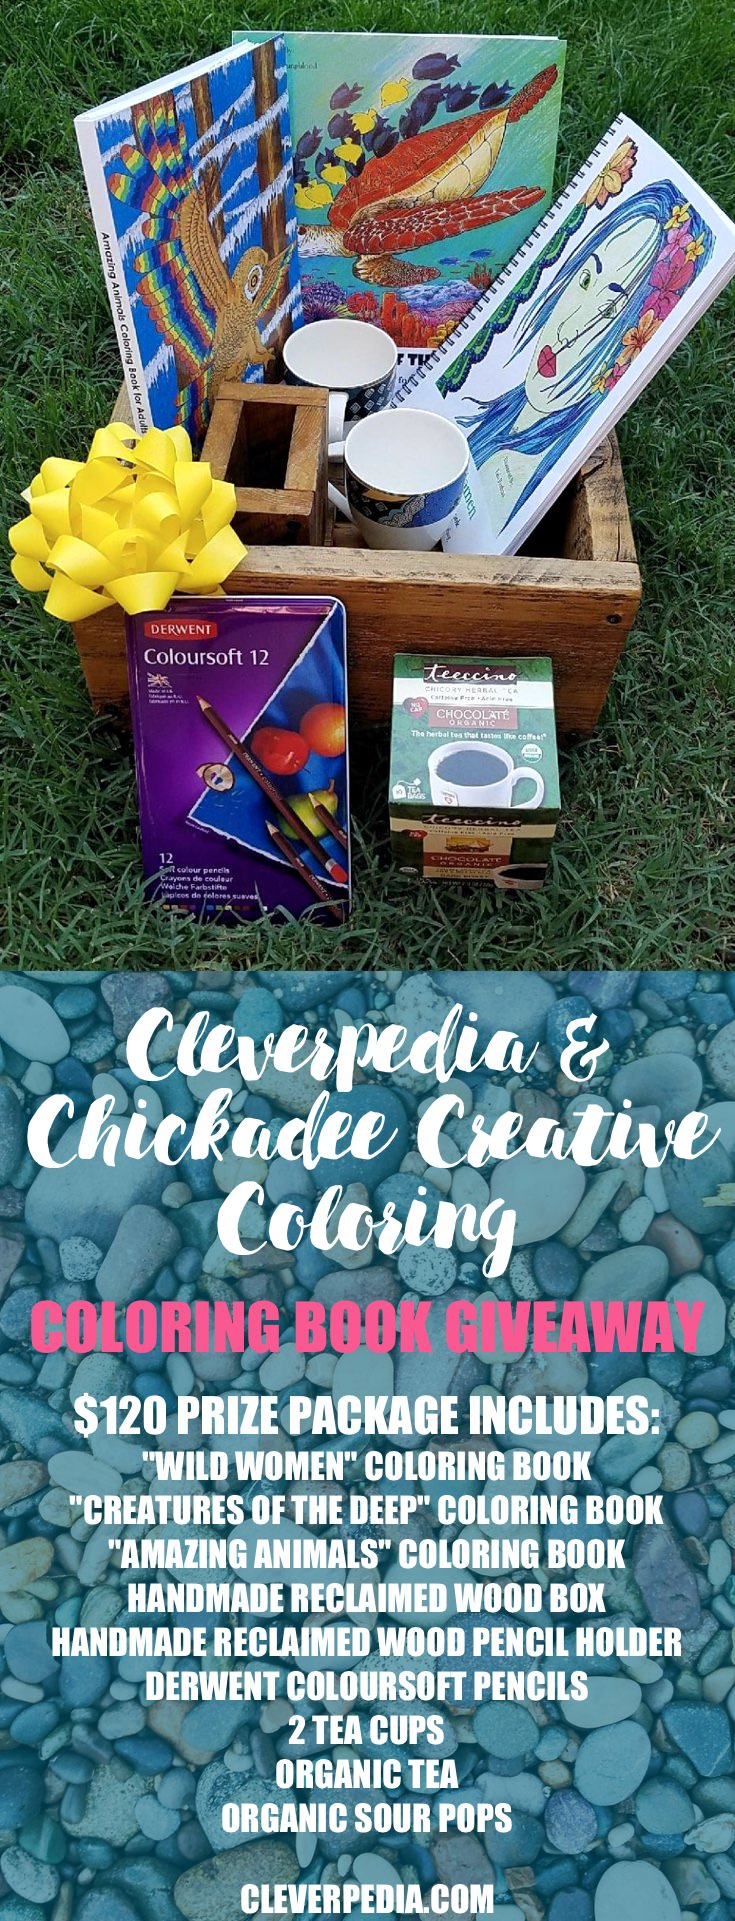 For Our Latest Coloring Book Giveaway Weve Partnered Up With Chickadee Creative